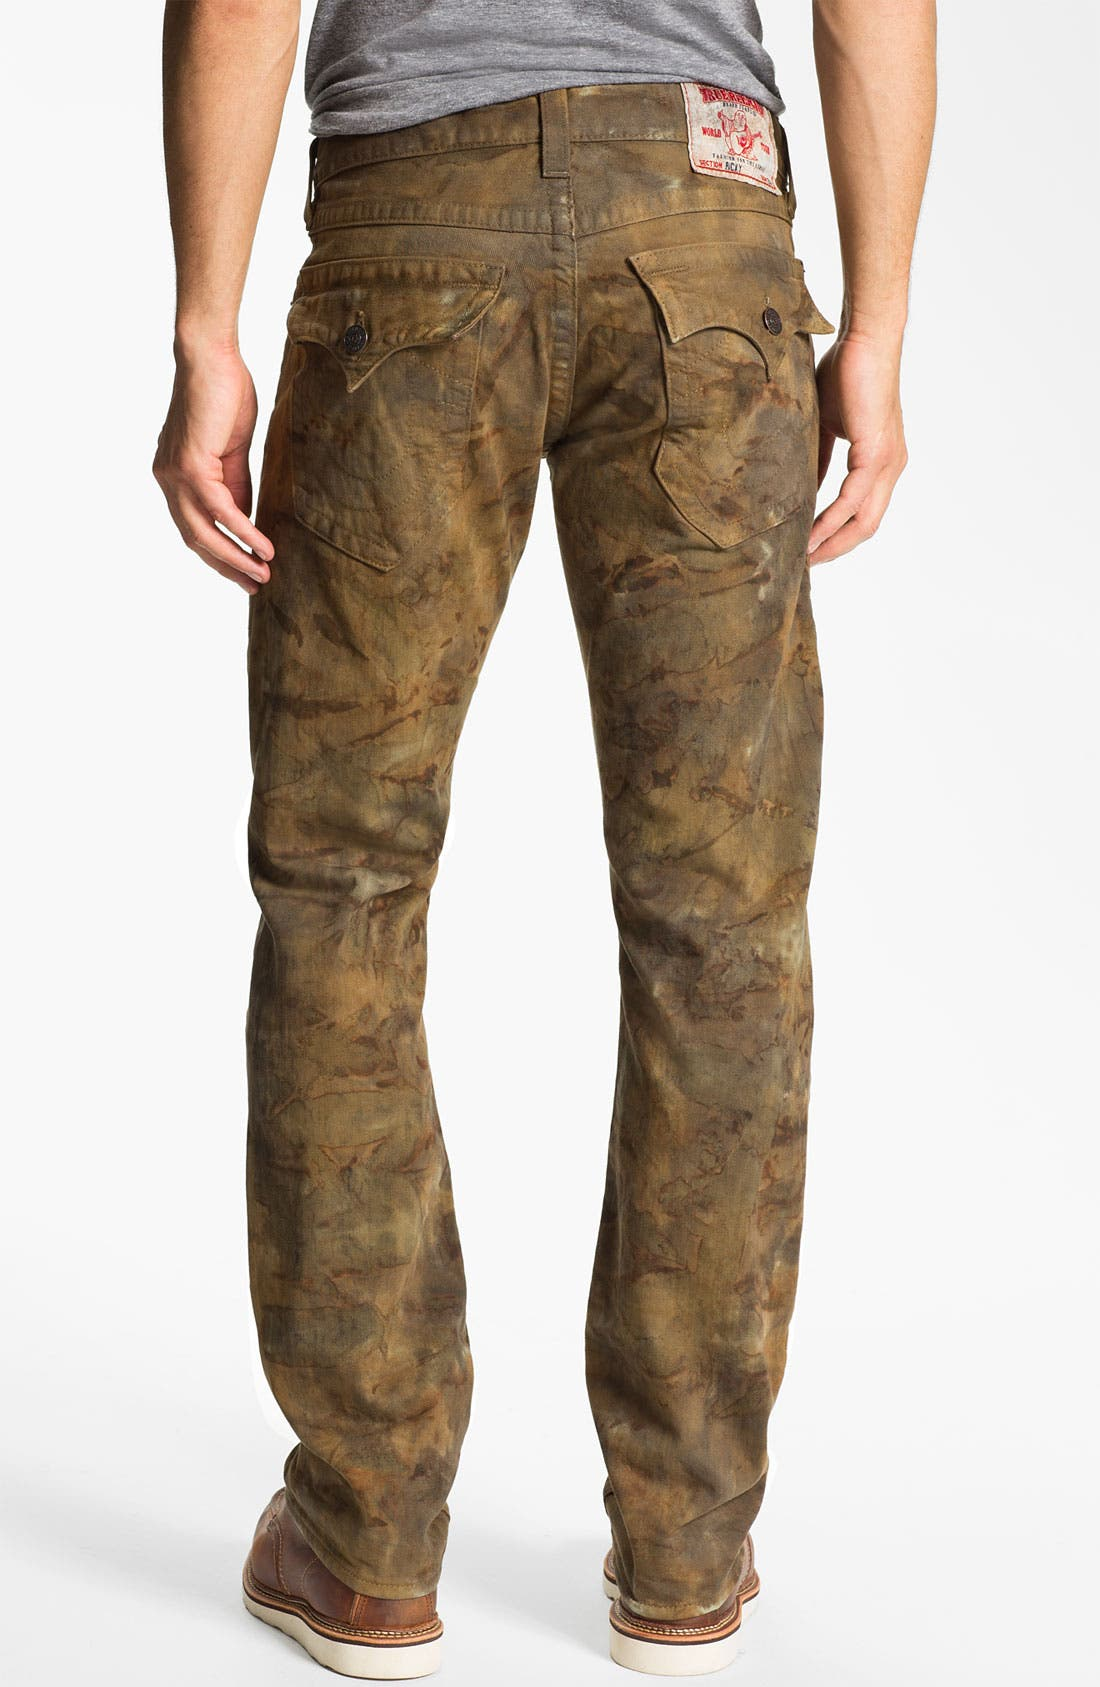 Alternate Image 1 Selected - True Religion Brand Jeans 'Ricky' Straight Leg Jeans (Military Tie Dye)